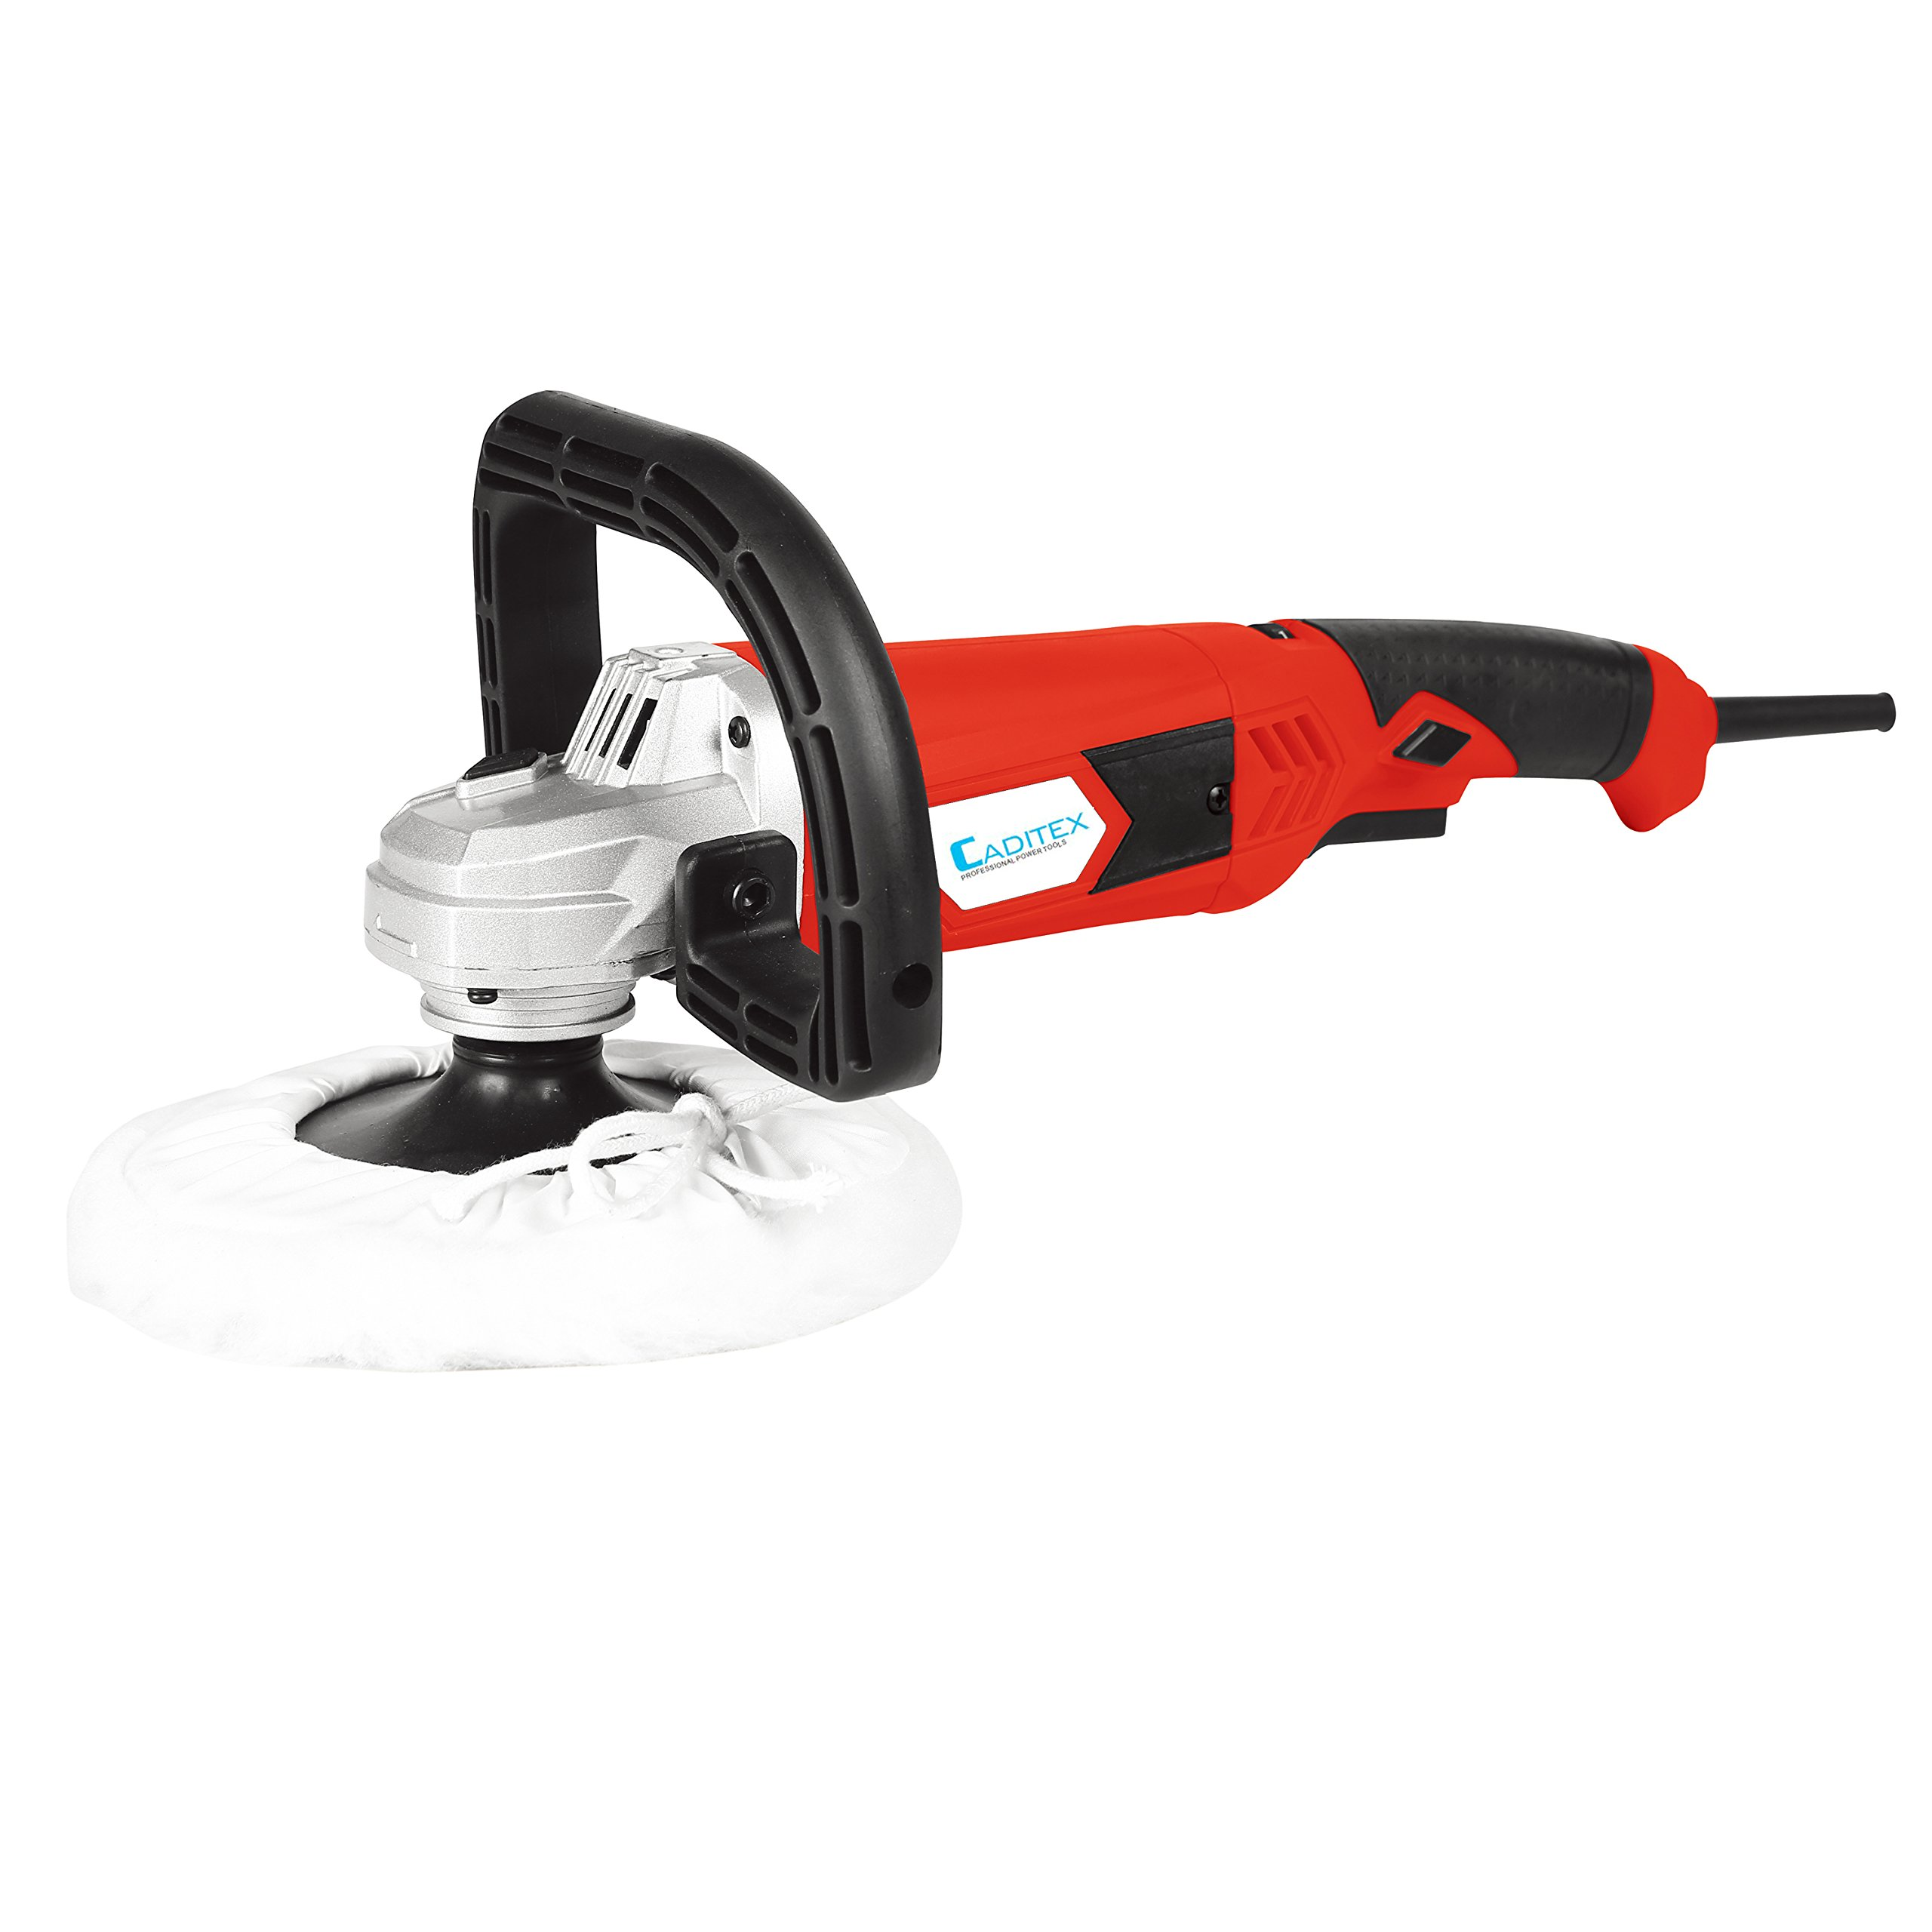 CADITEX Brand 10.0-Amp Variable Speed Polisher with 1 Polishing Plate, 1 Wool Sleeve, 1 D-shape Handle and 1 Inner Hexagon Spanner